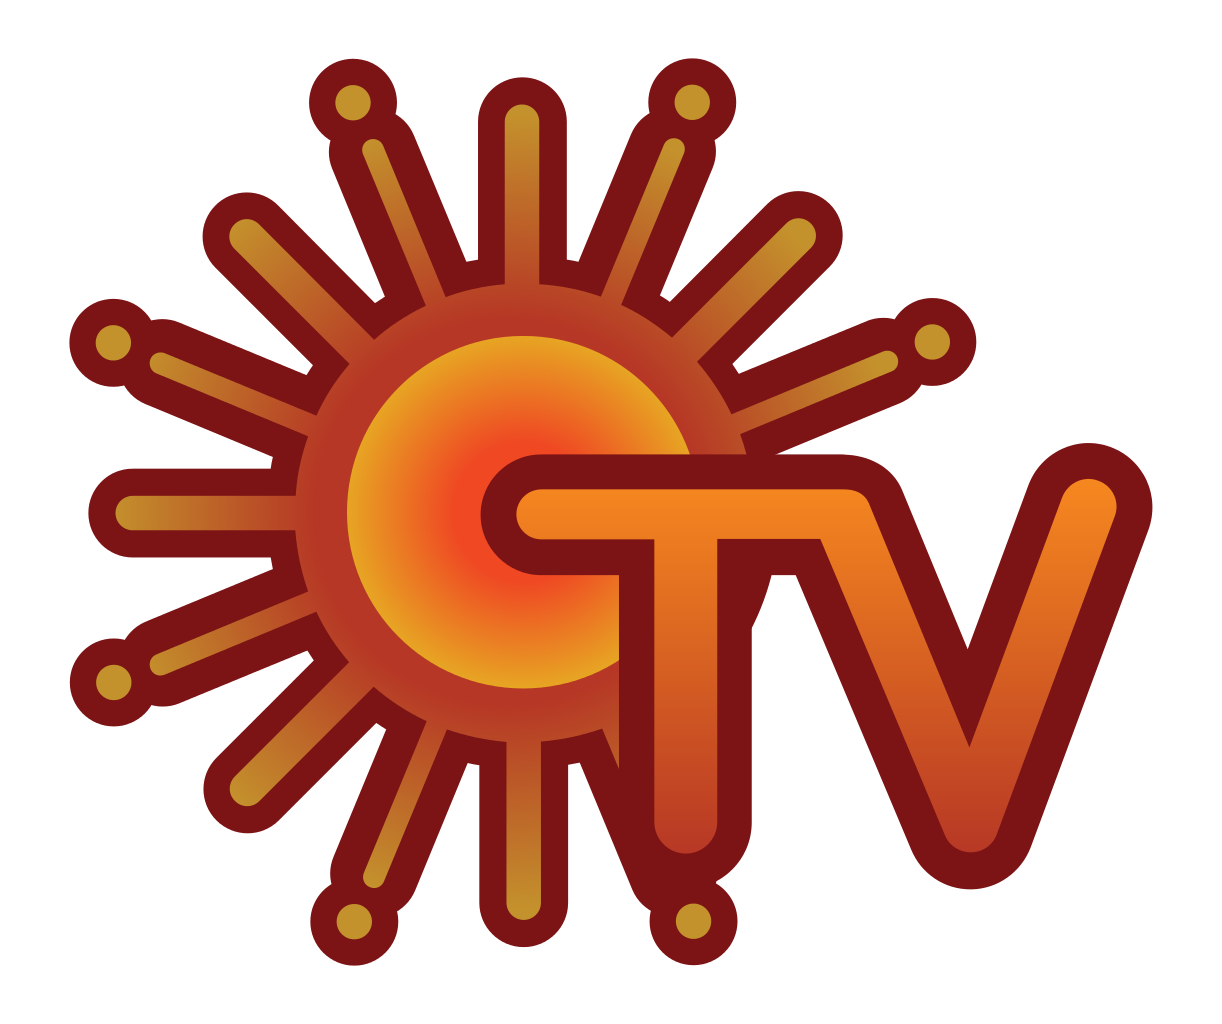 News clipart television news. Want to watch sun